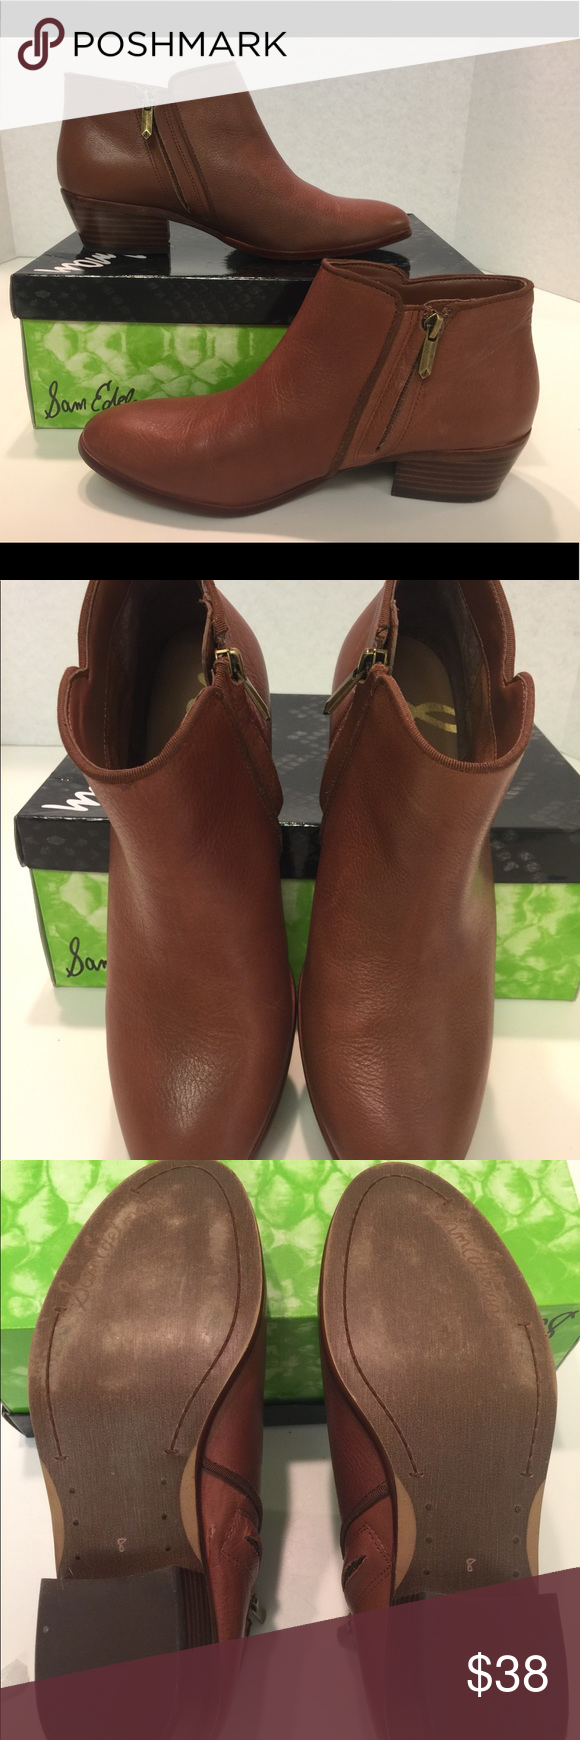 """ce11cd96e8feb San Edelman Petty Ankle Boots """"Saddle"""" 🌟LIKE NEW🌟 Sam Edelman Petty boots  in Saddle • Brown Leather ankle boots size 8"""